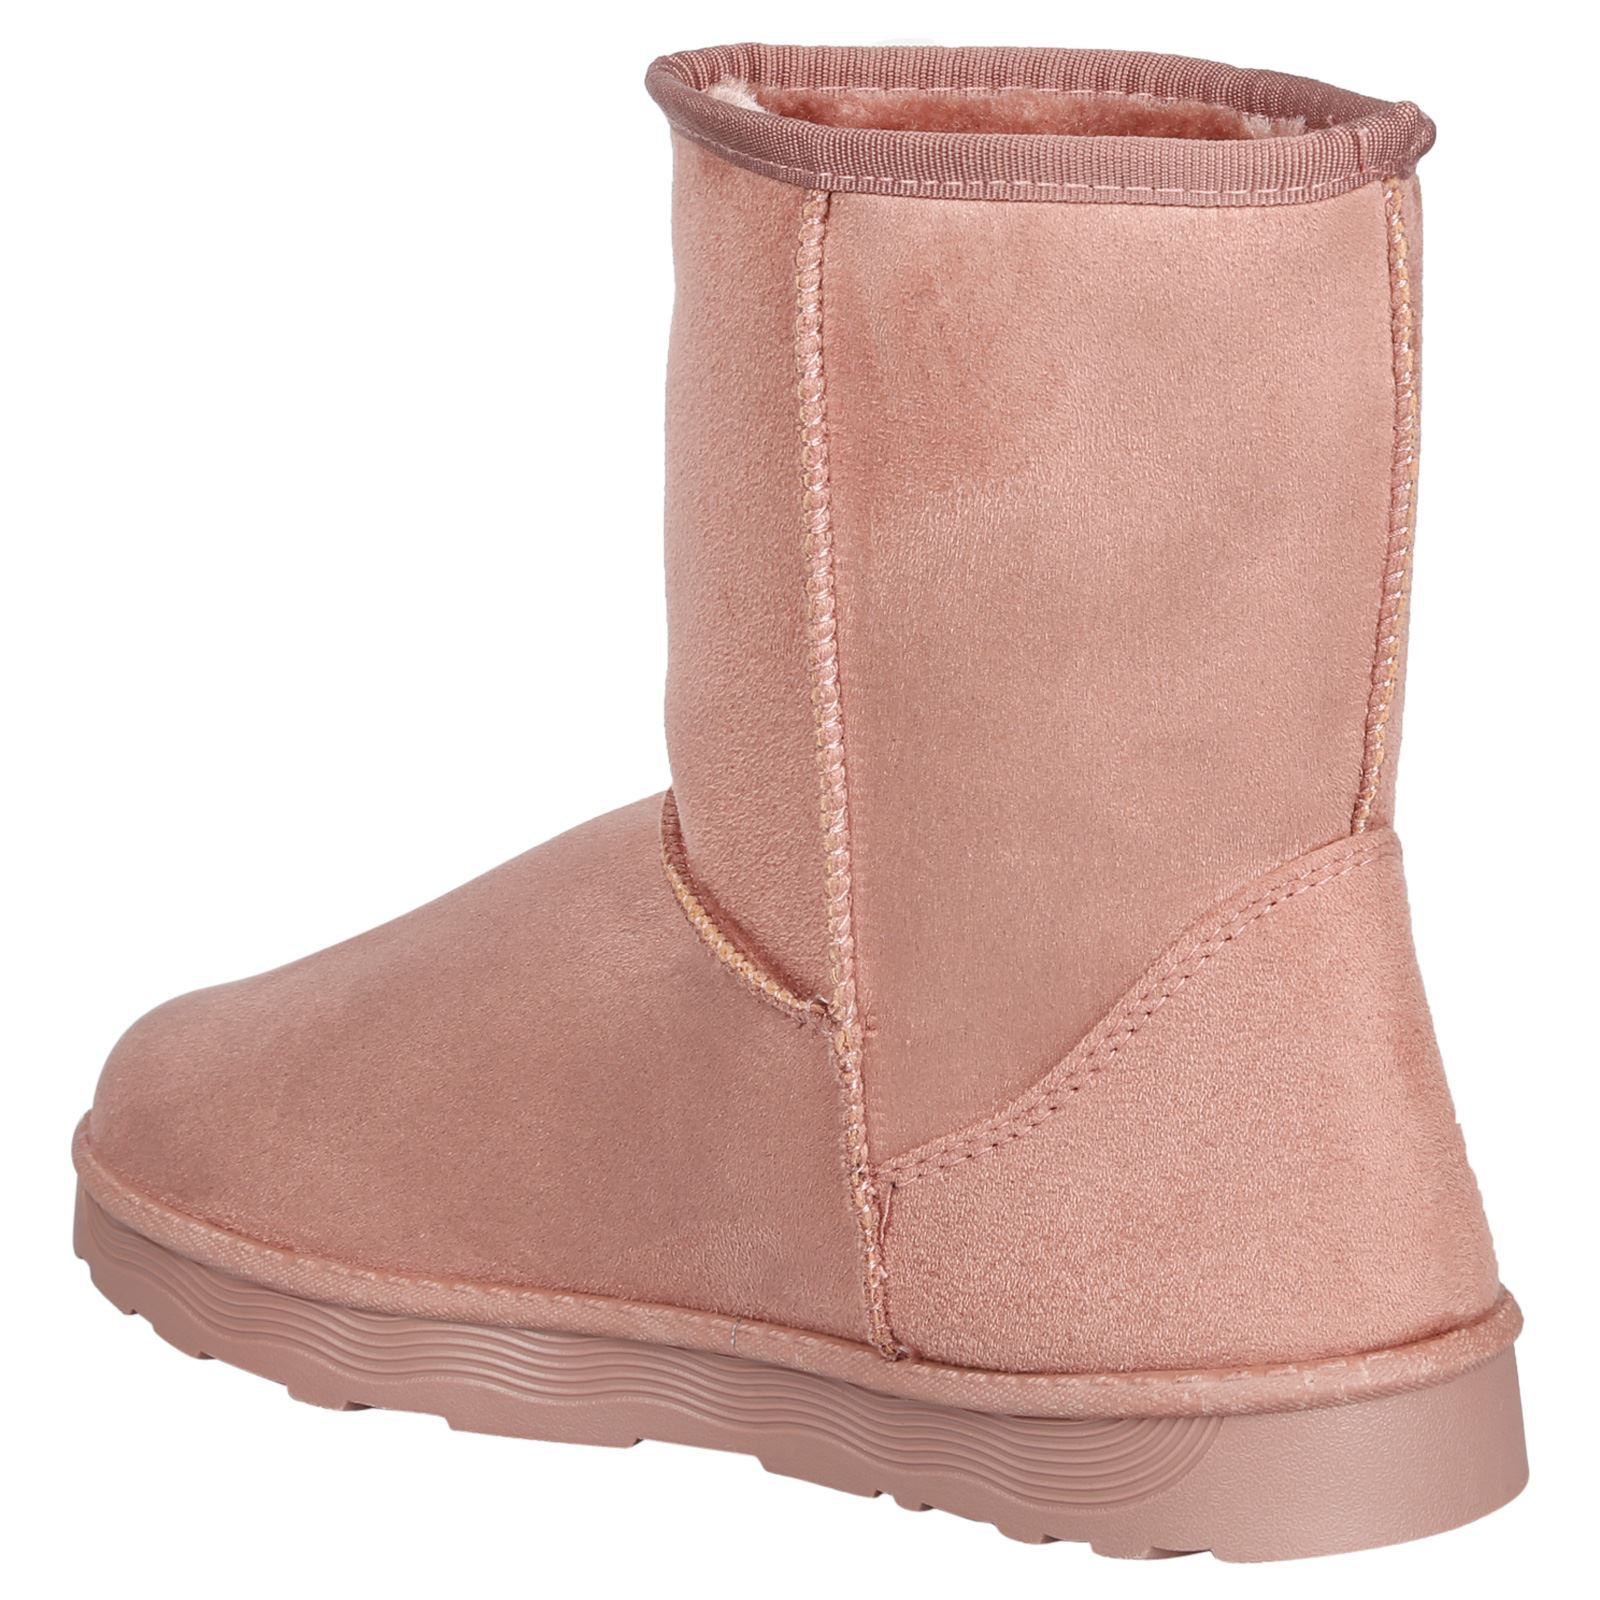 Paisleigh-Womens-Platfrom-Flat-Fur-Lined-Pull-On-Snug-Snow-Boots-Casual-Ladies thumbnail 20